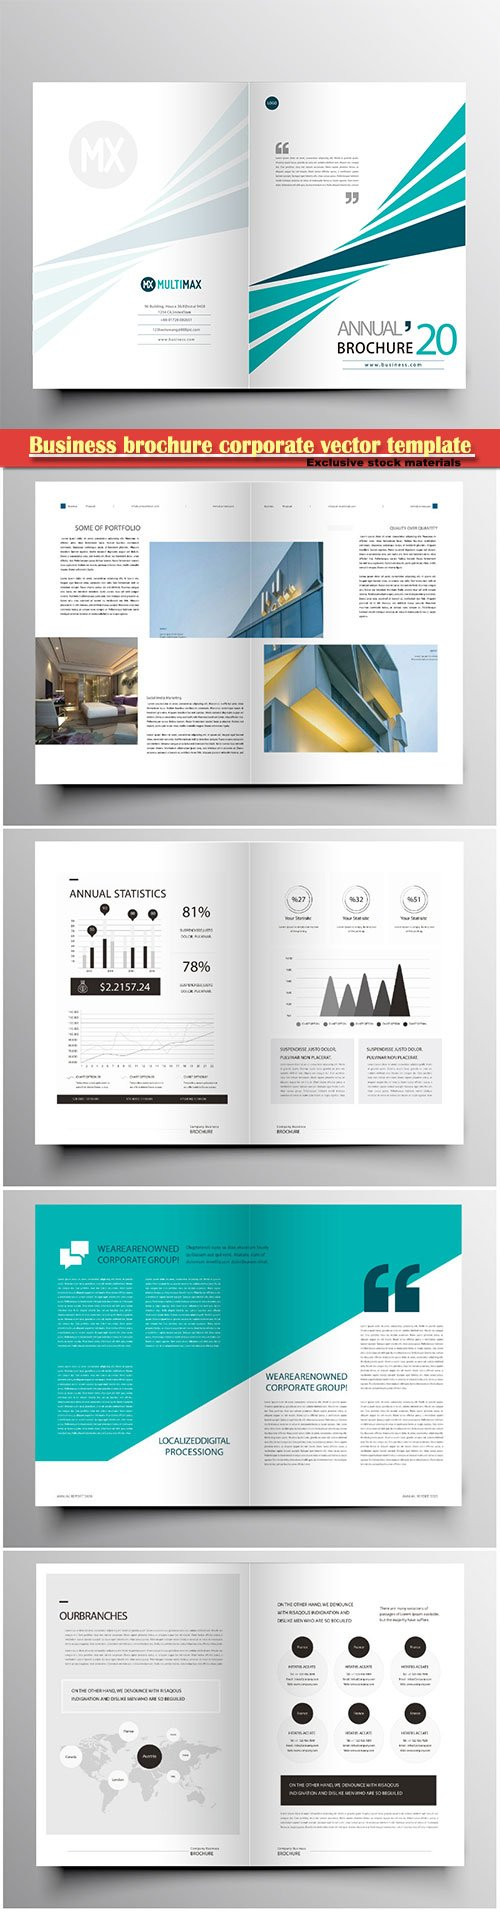 Business brochure corporate vector template, magazine flyer mockup # 47